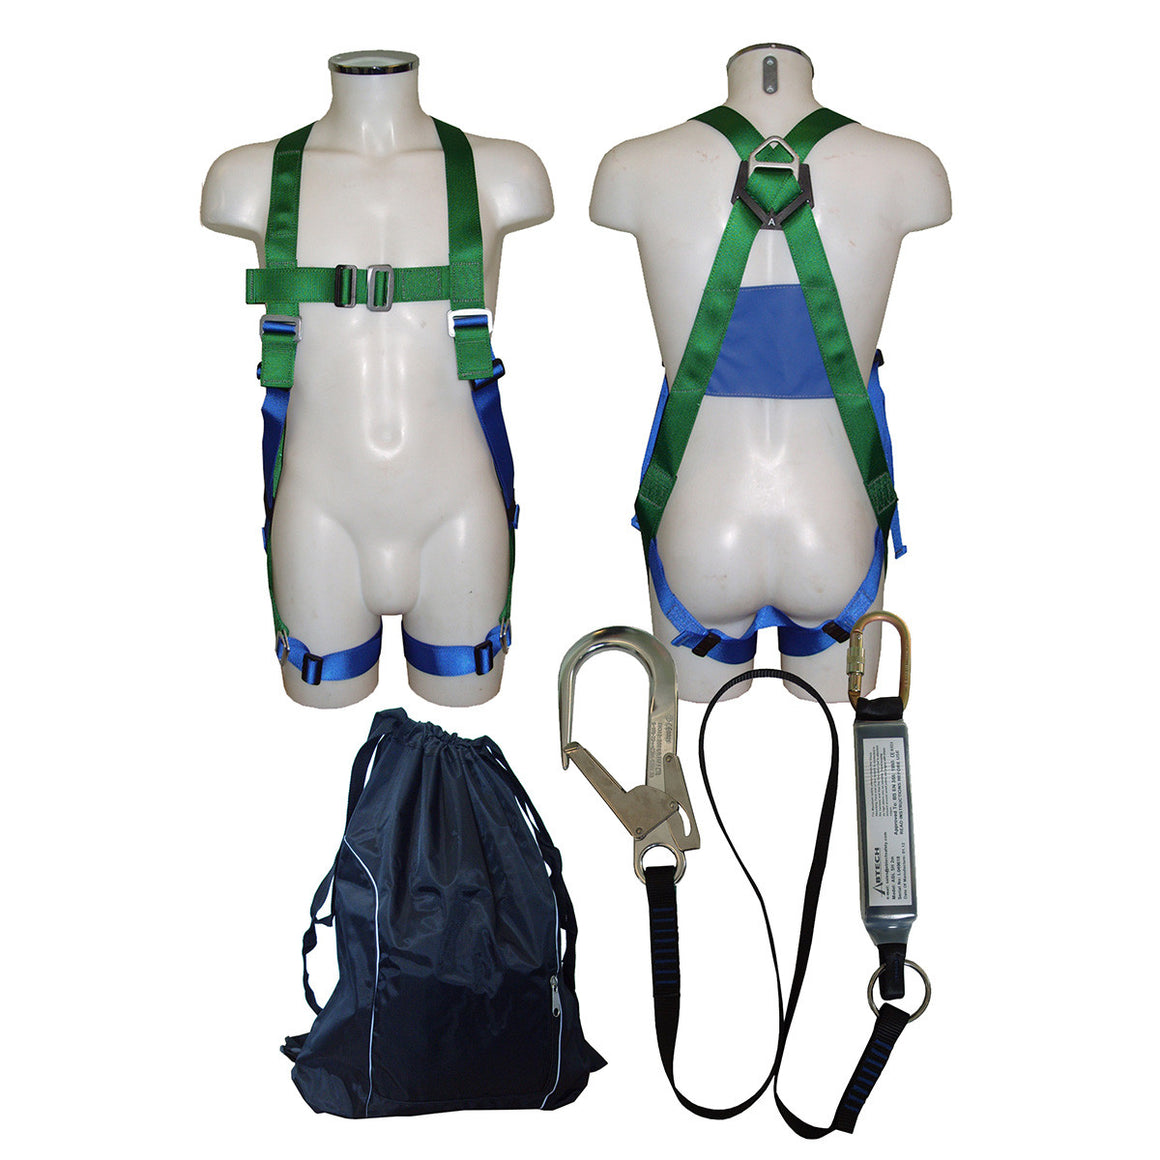 AB10 Kit - Scaffolders Safety Harness Kit 1